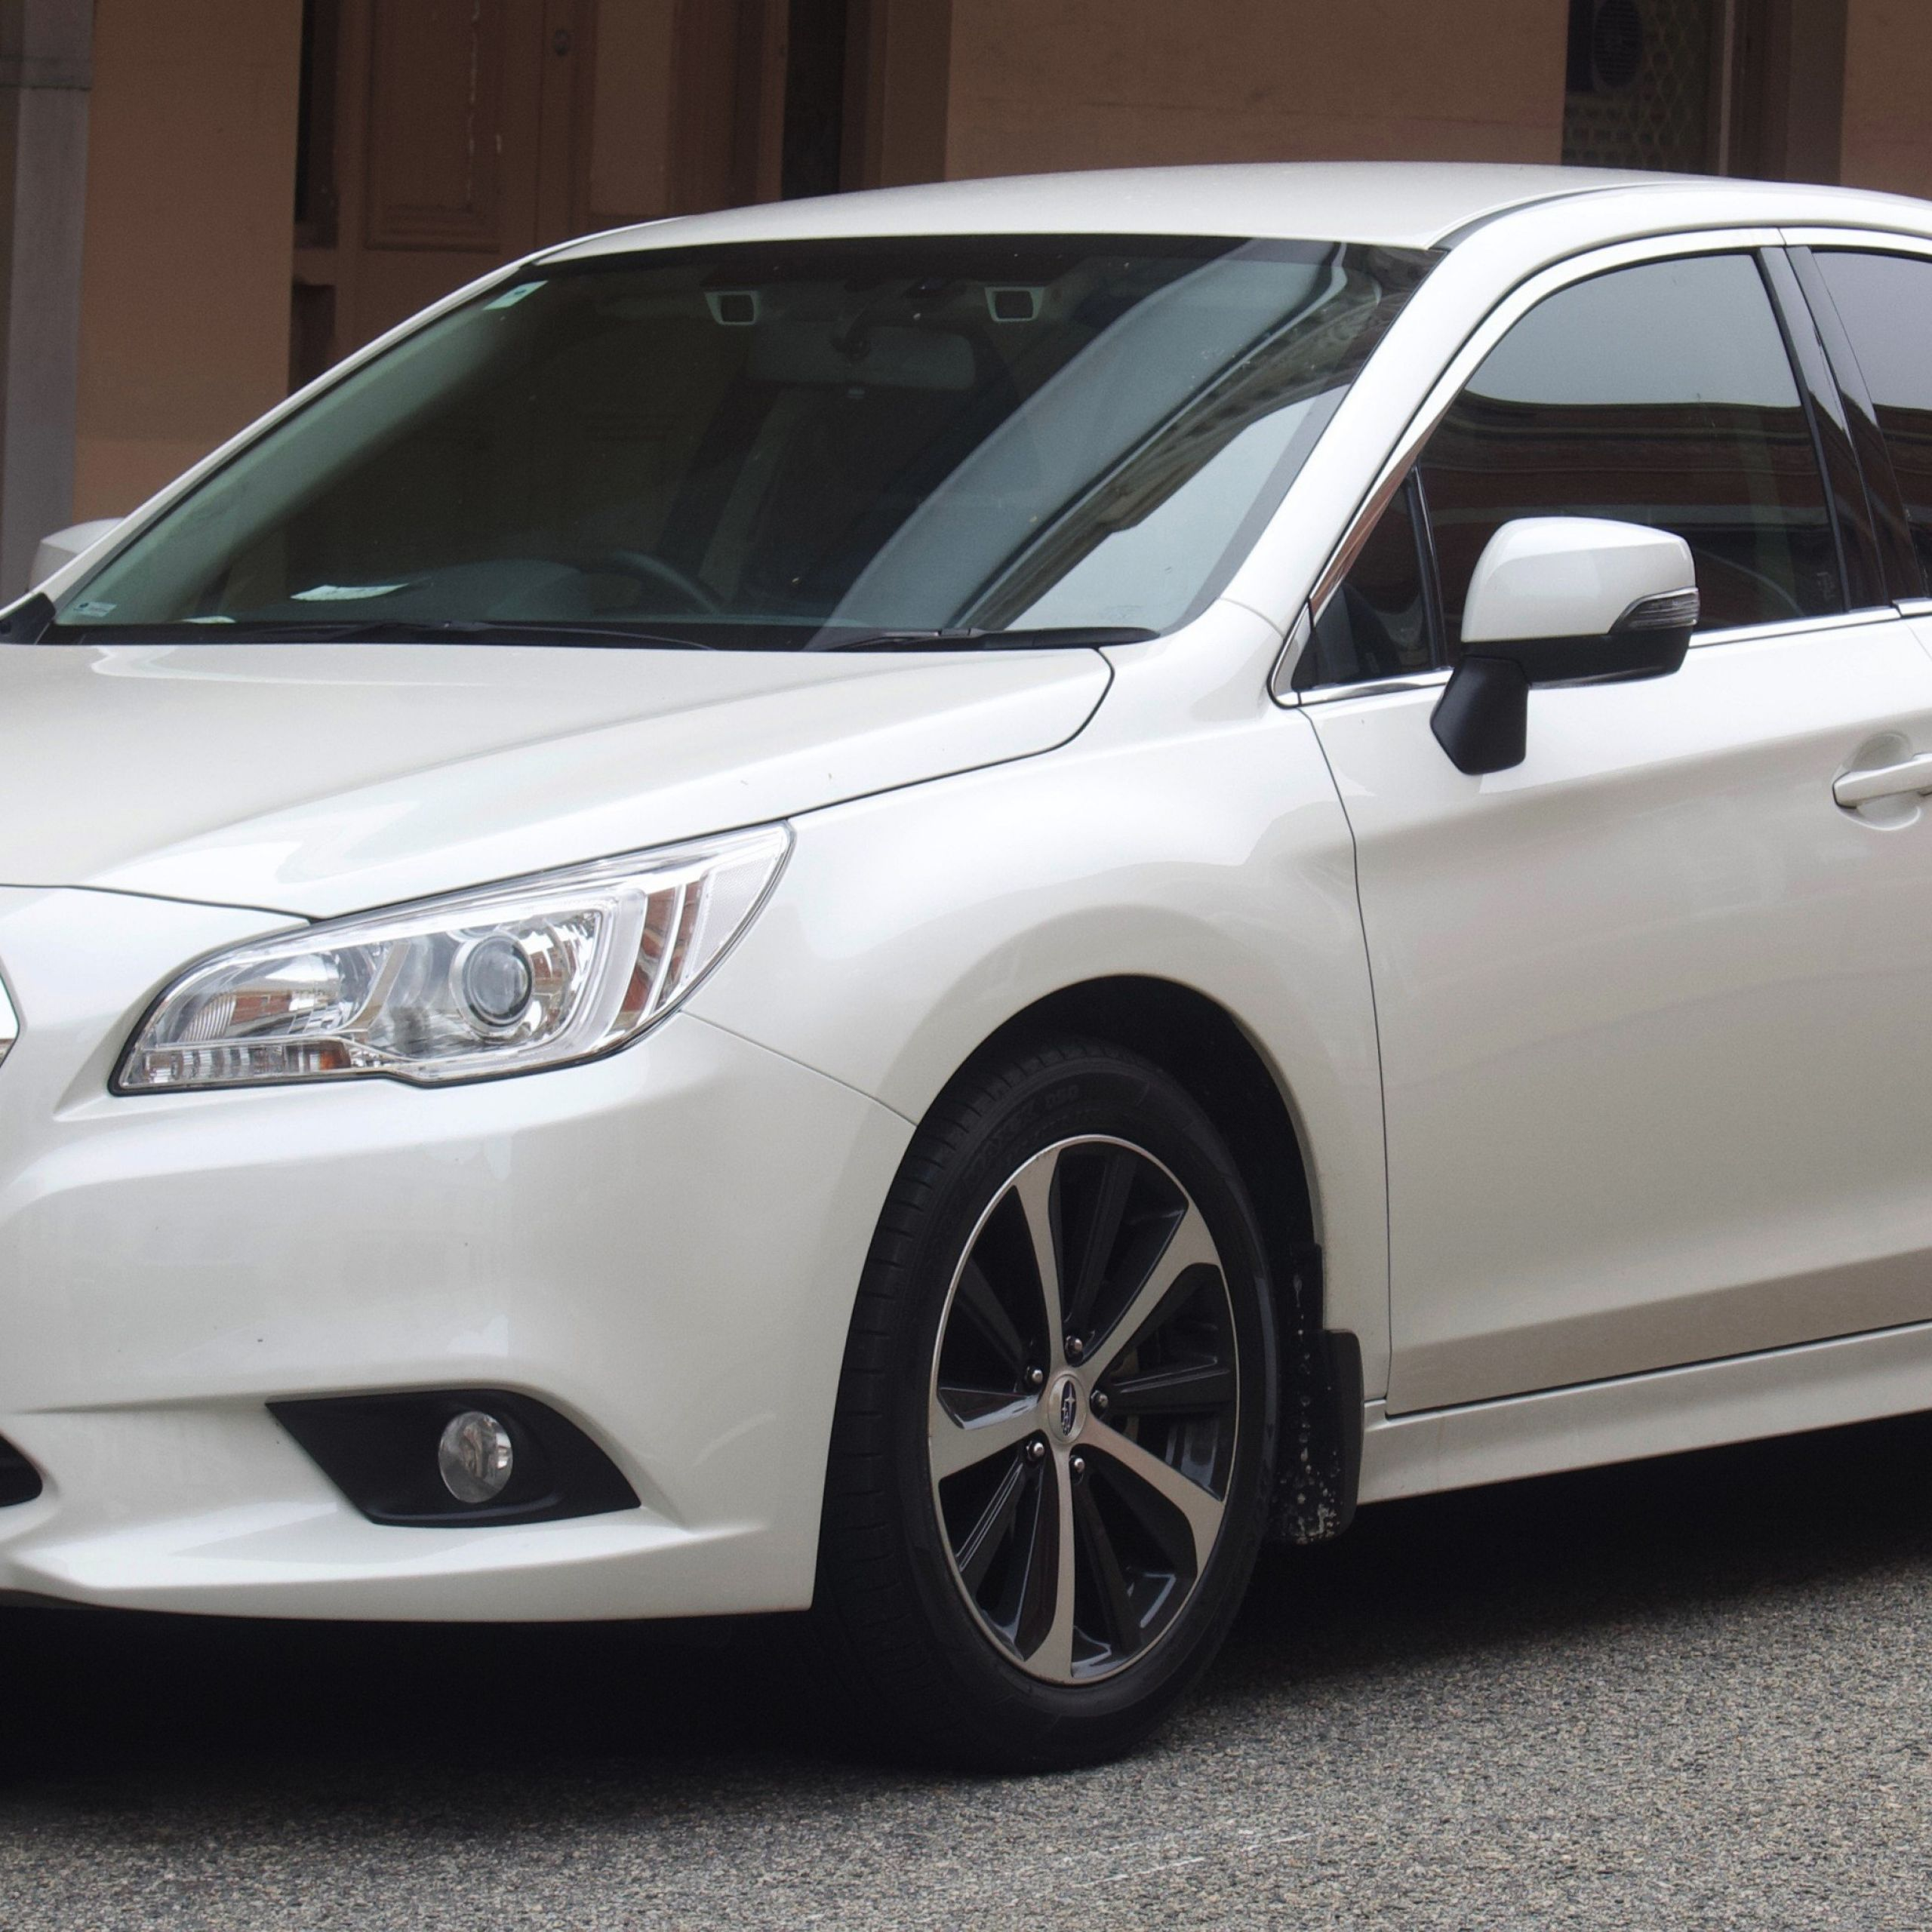 2016 Subaru Liberty MY16 2 5i sedan % 11 02 01